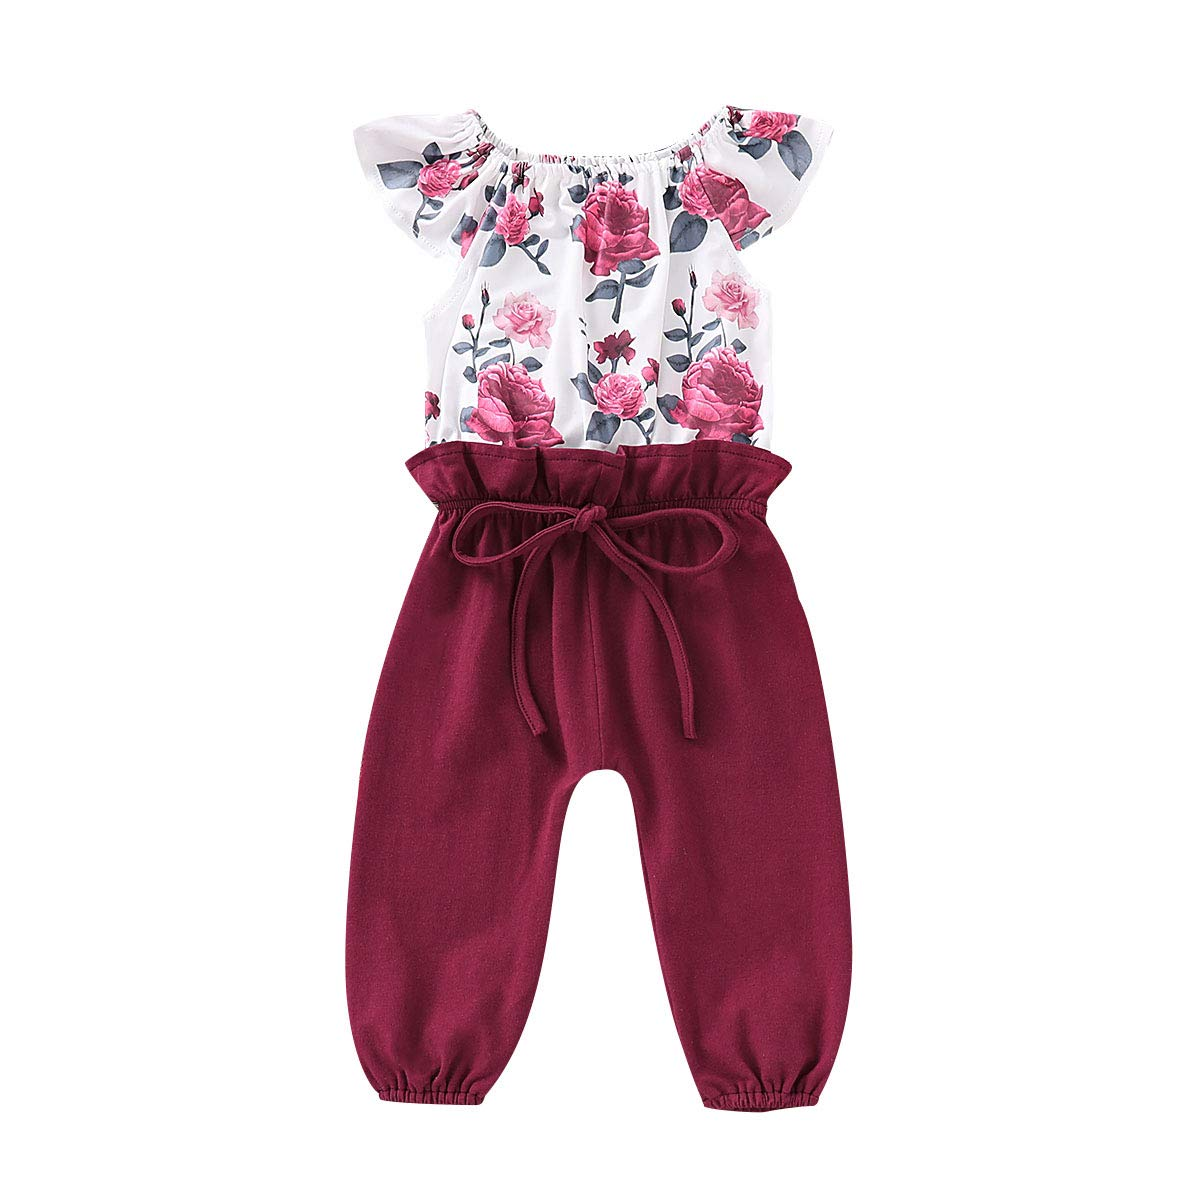 YDuoDuo 1-6T Baby Toddler Little Girls Summer Outfit Floral Ruffles Corset Jumpsuit Romper Harem Pants Vintage Clothes